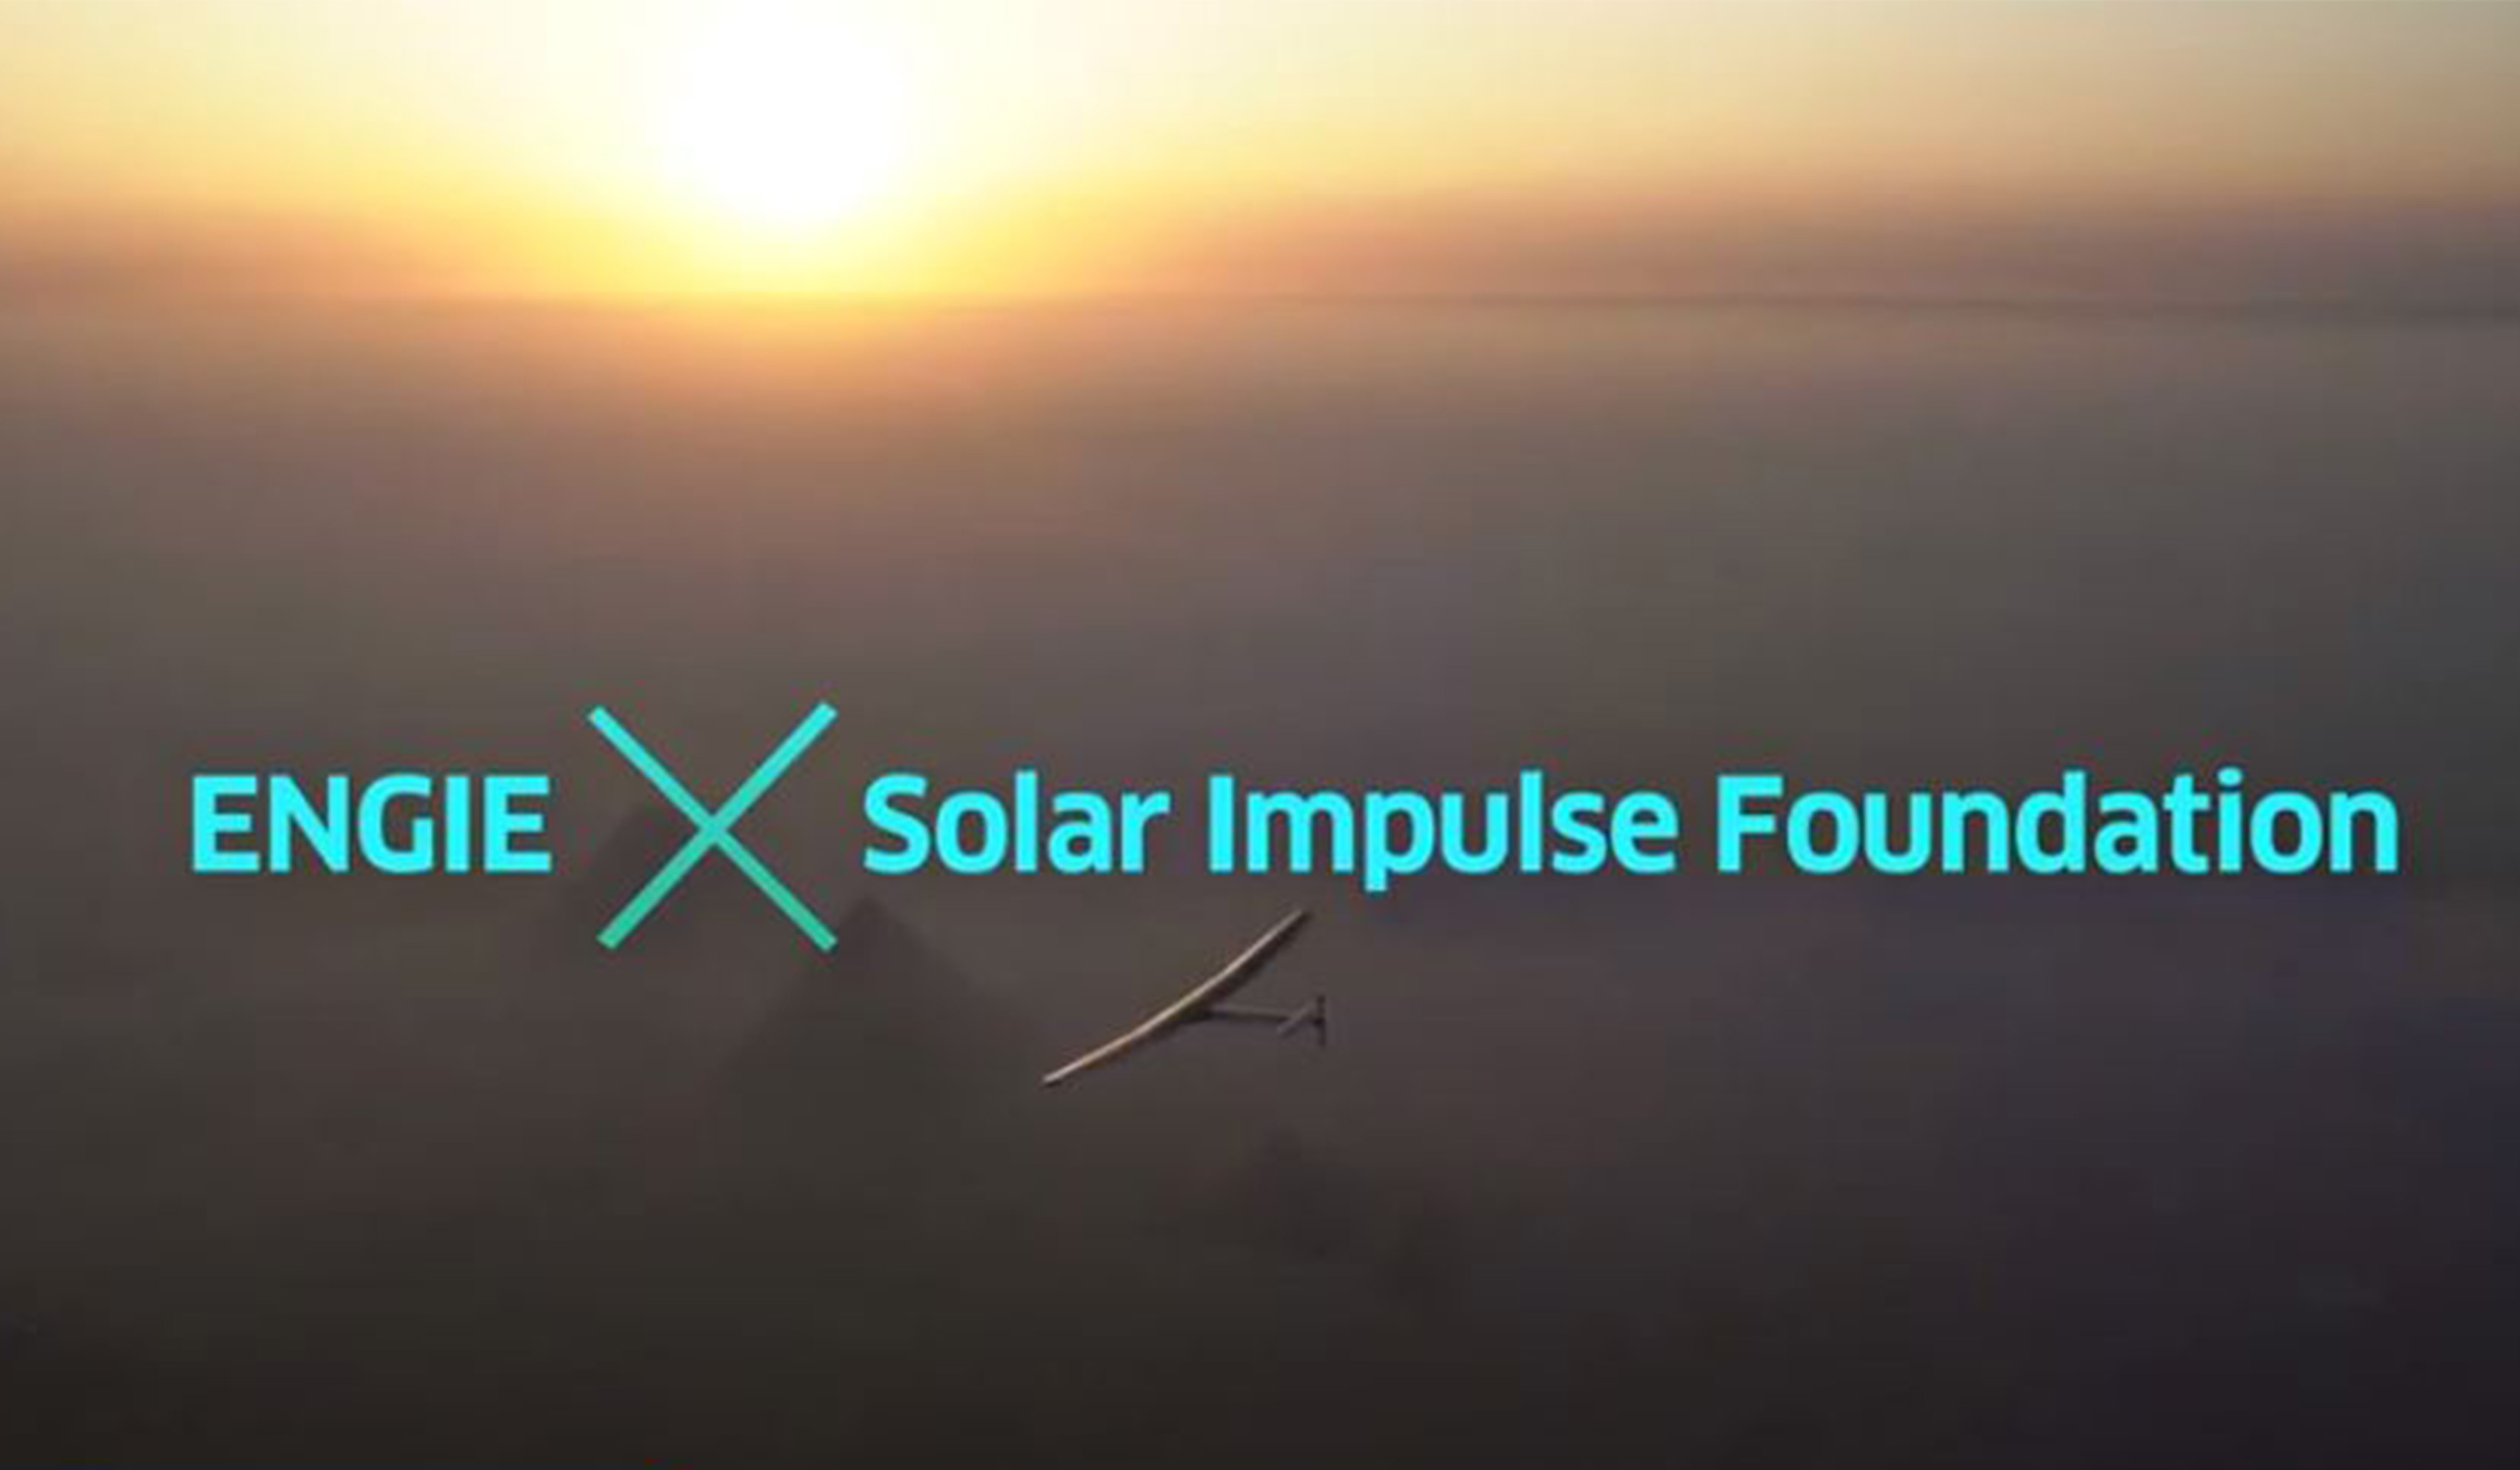 How is the Solar Impulse Foundation involved in the ENGIE Innovation Trophies?